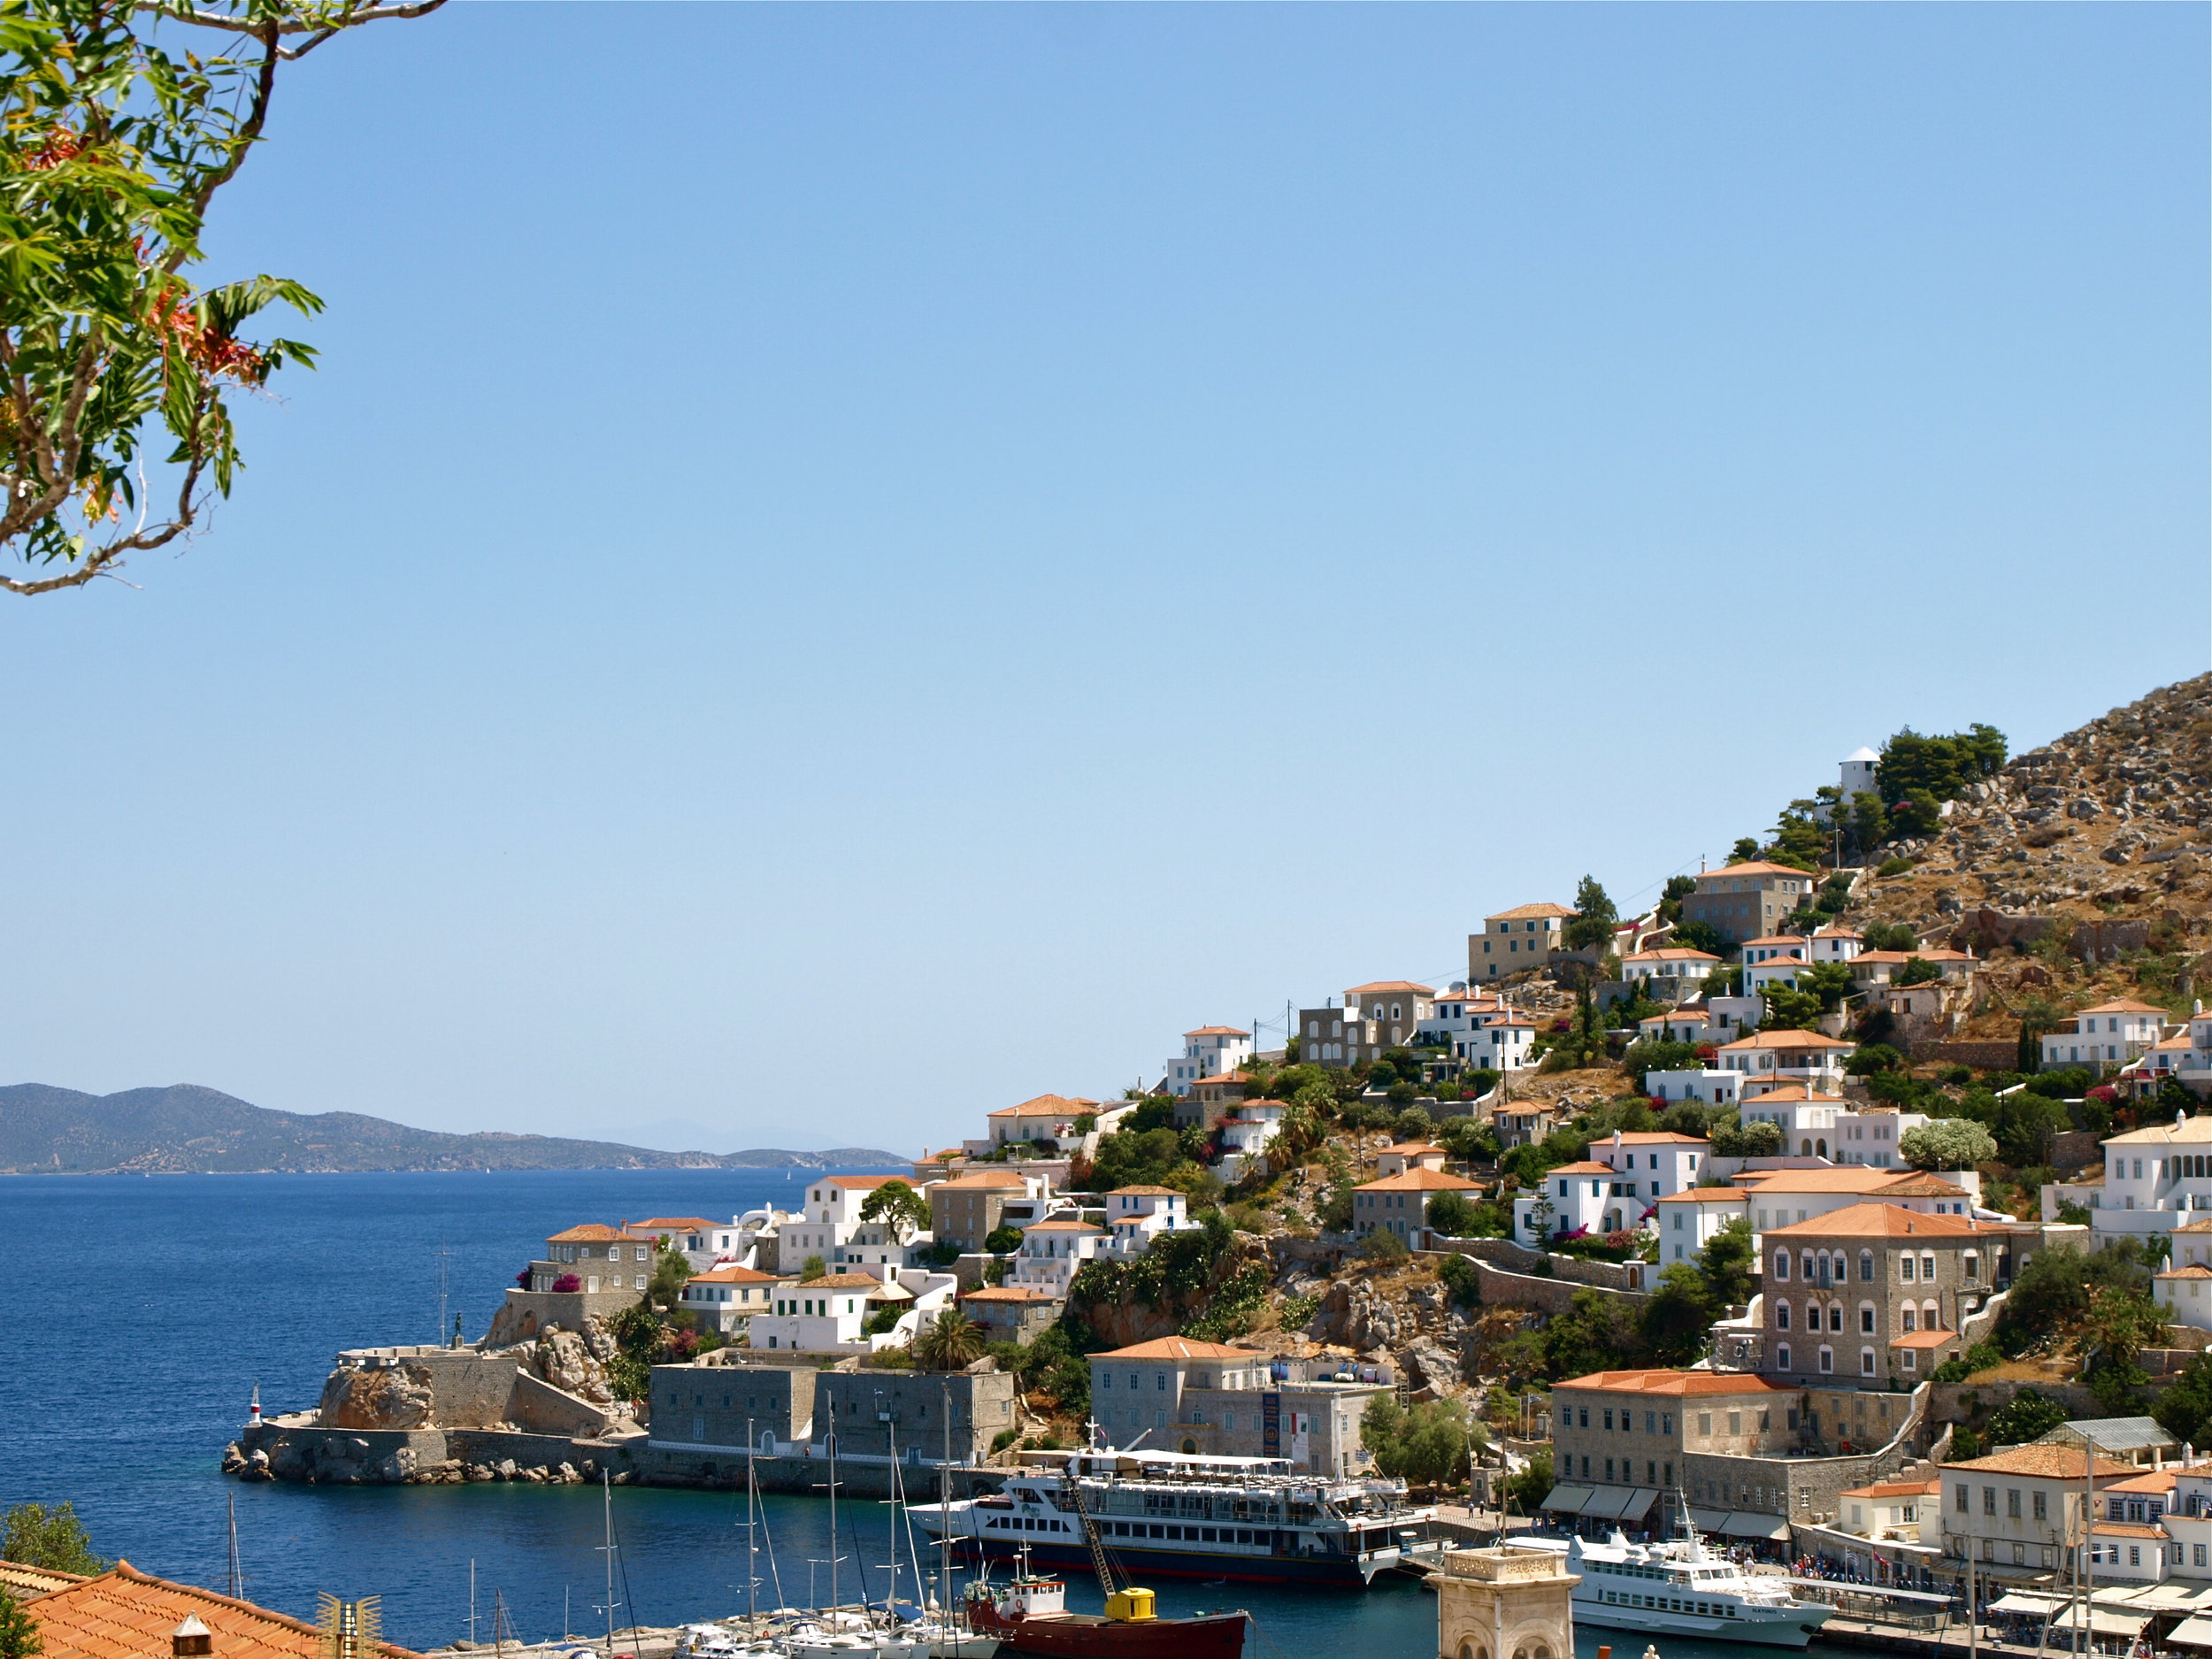 The picturesque Hydra island was adored by the late Leonard Cohen. (Picture by Katherine Poseidon)